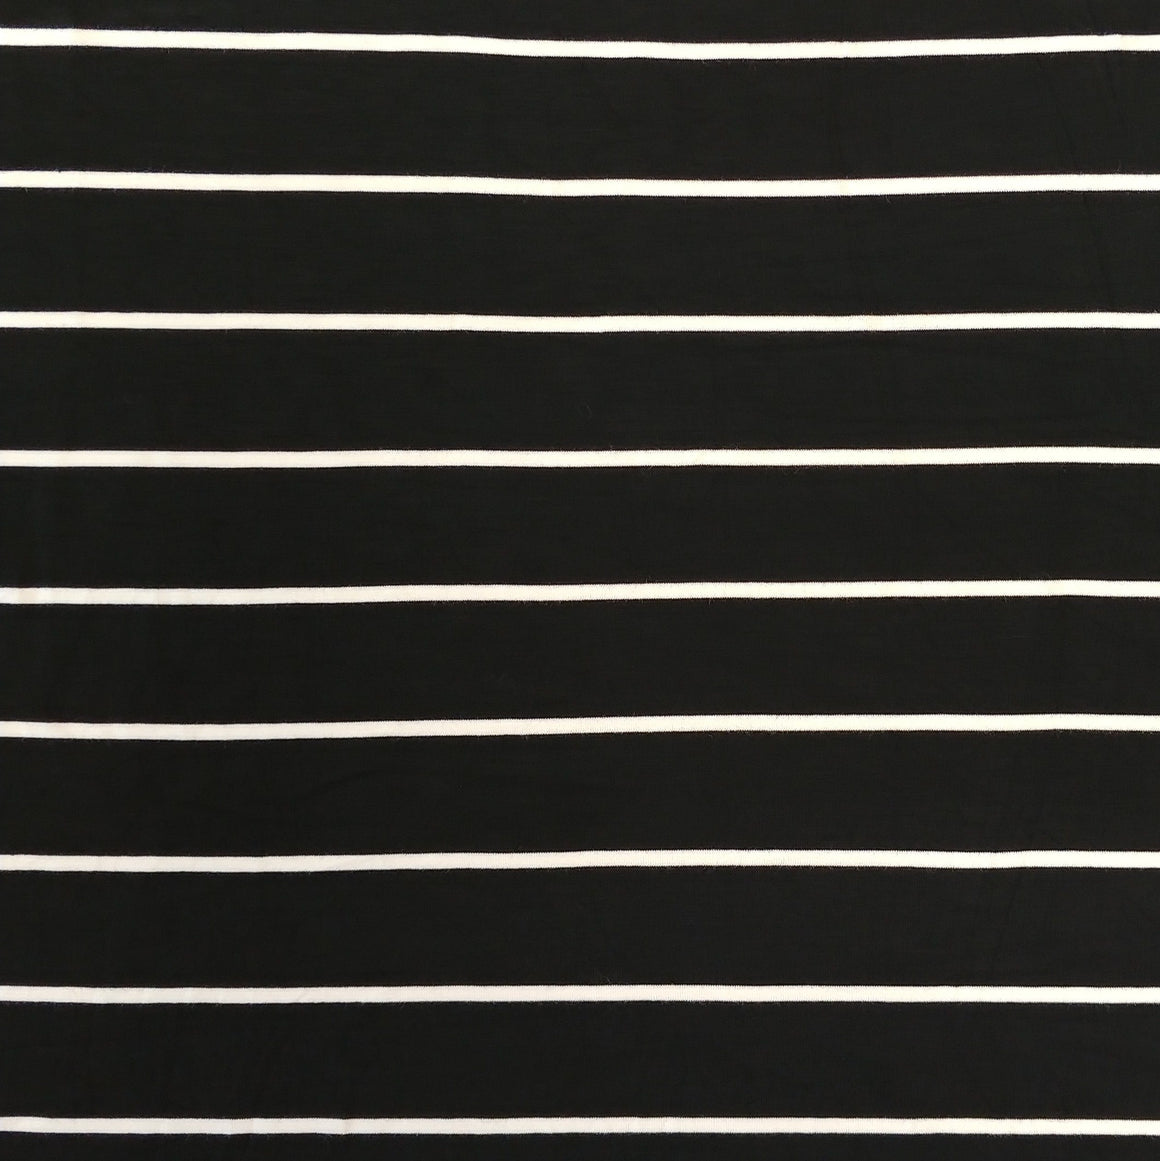 Black and Off White Yarn Dyed Stripe Modal Spandex Jersey Knit Fabric - Raspberry Creek Fabrics